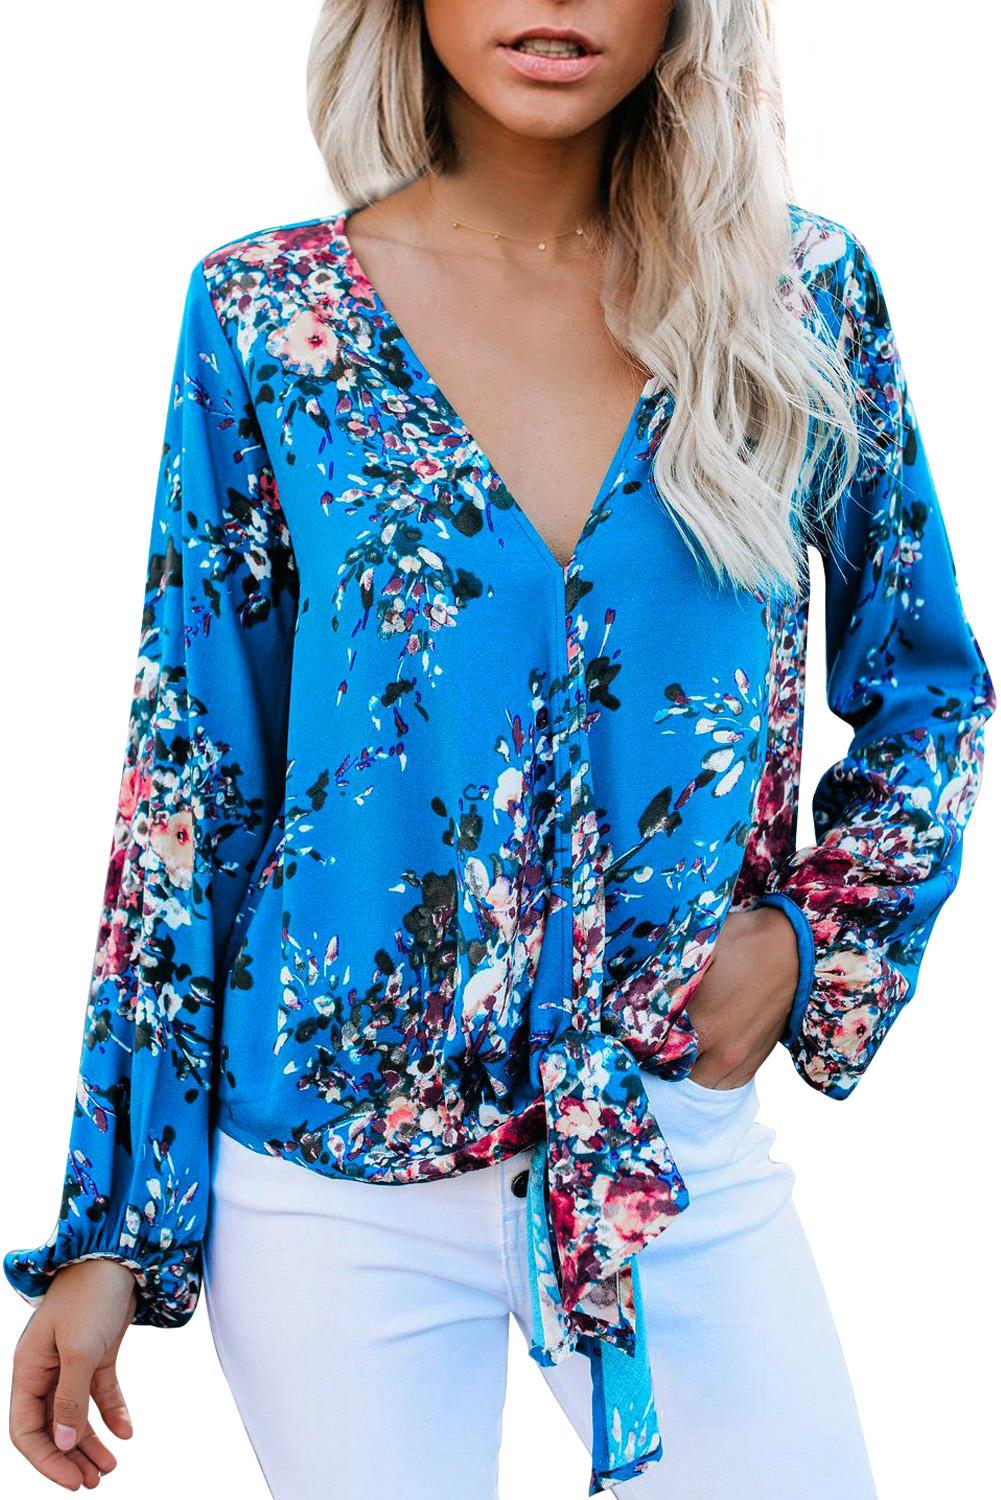 Sky Blue V Neck Long Sleeve Tie Front Blouse